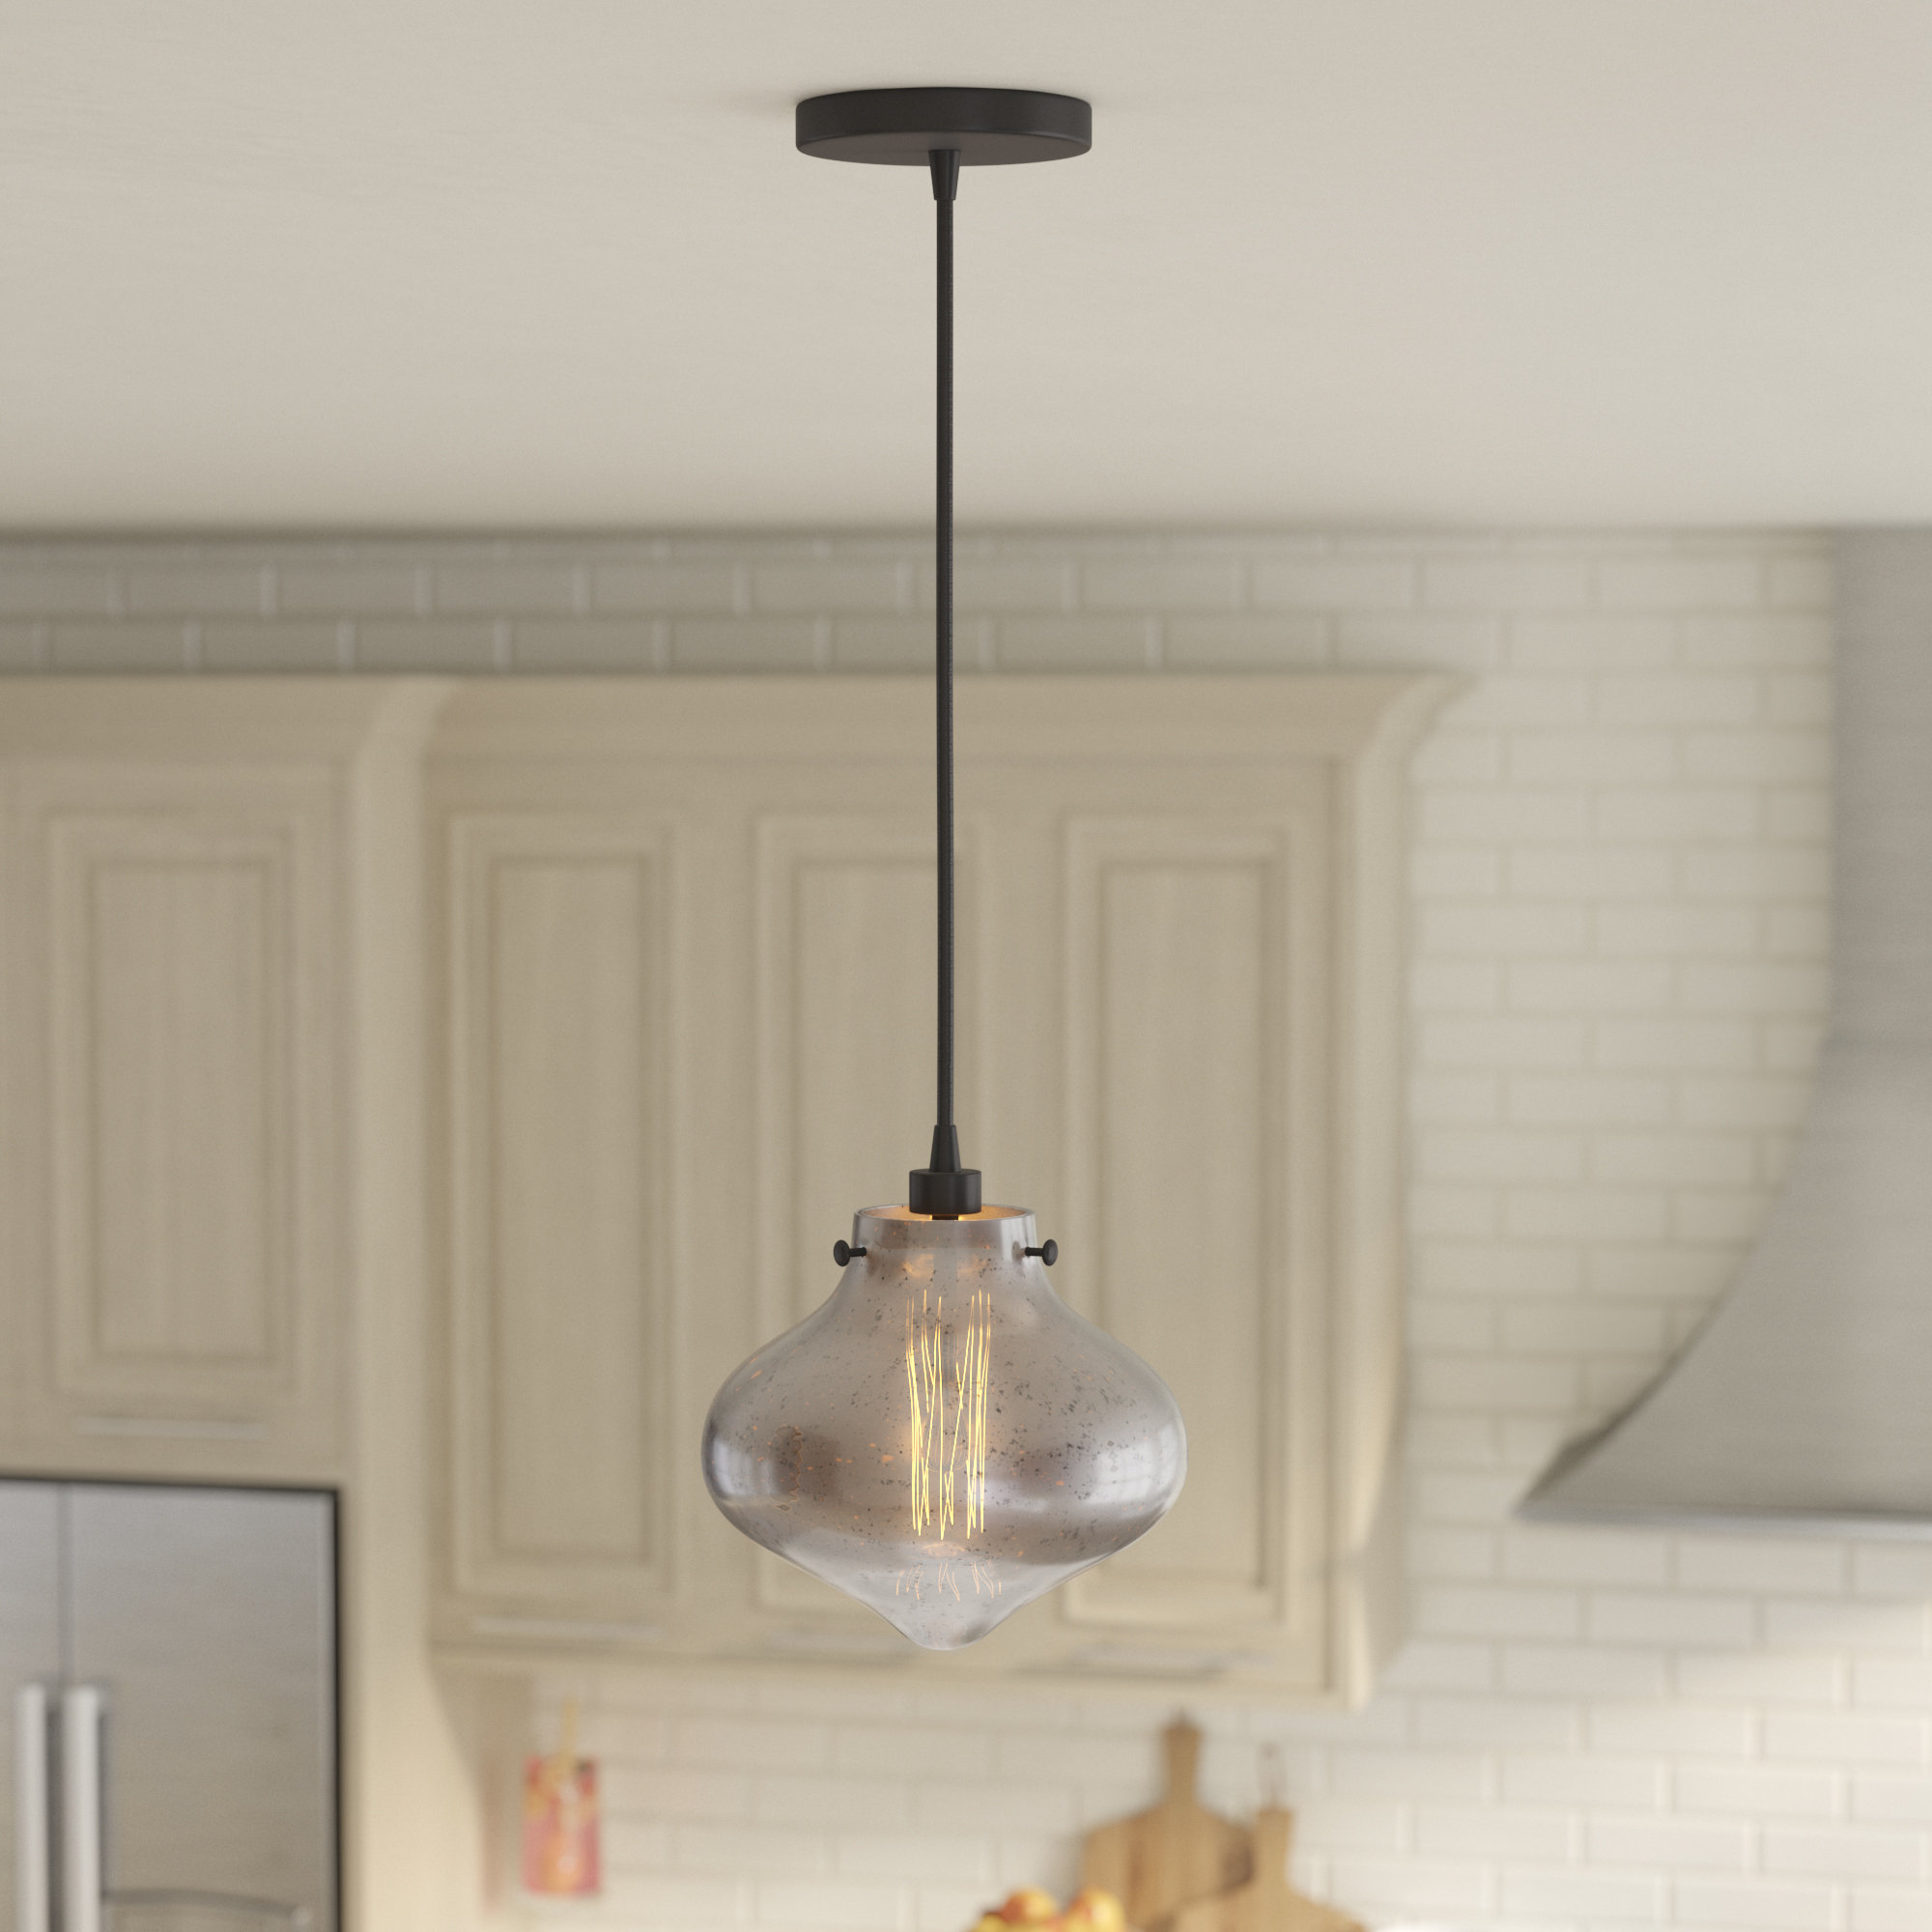 Well Liked Betsy 1 Light Single Globe Pendants Regarding Betsy 1 Light Glass Shade Schoolhouse Pendant (View 4 of 20)